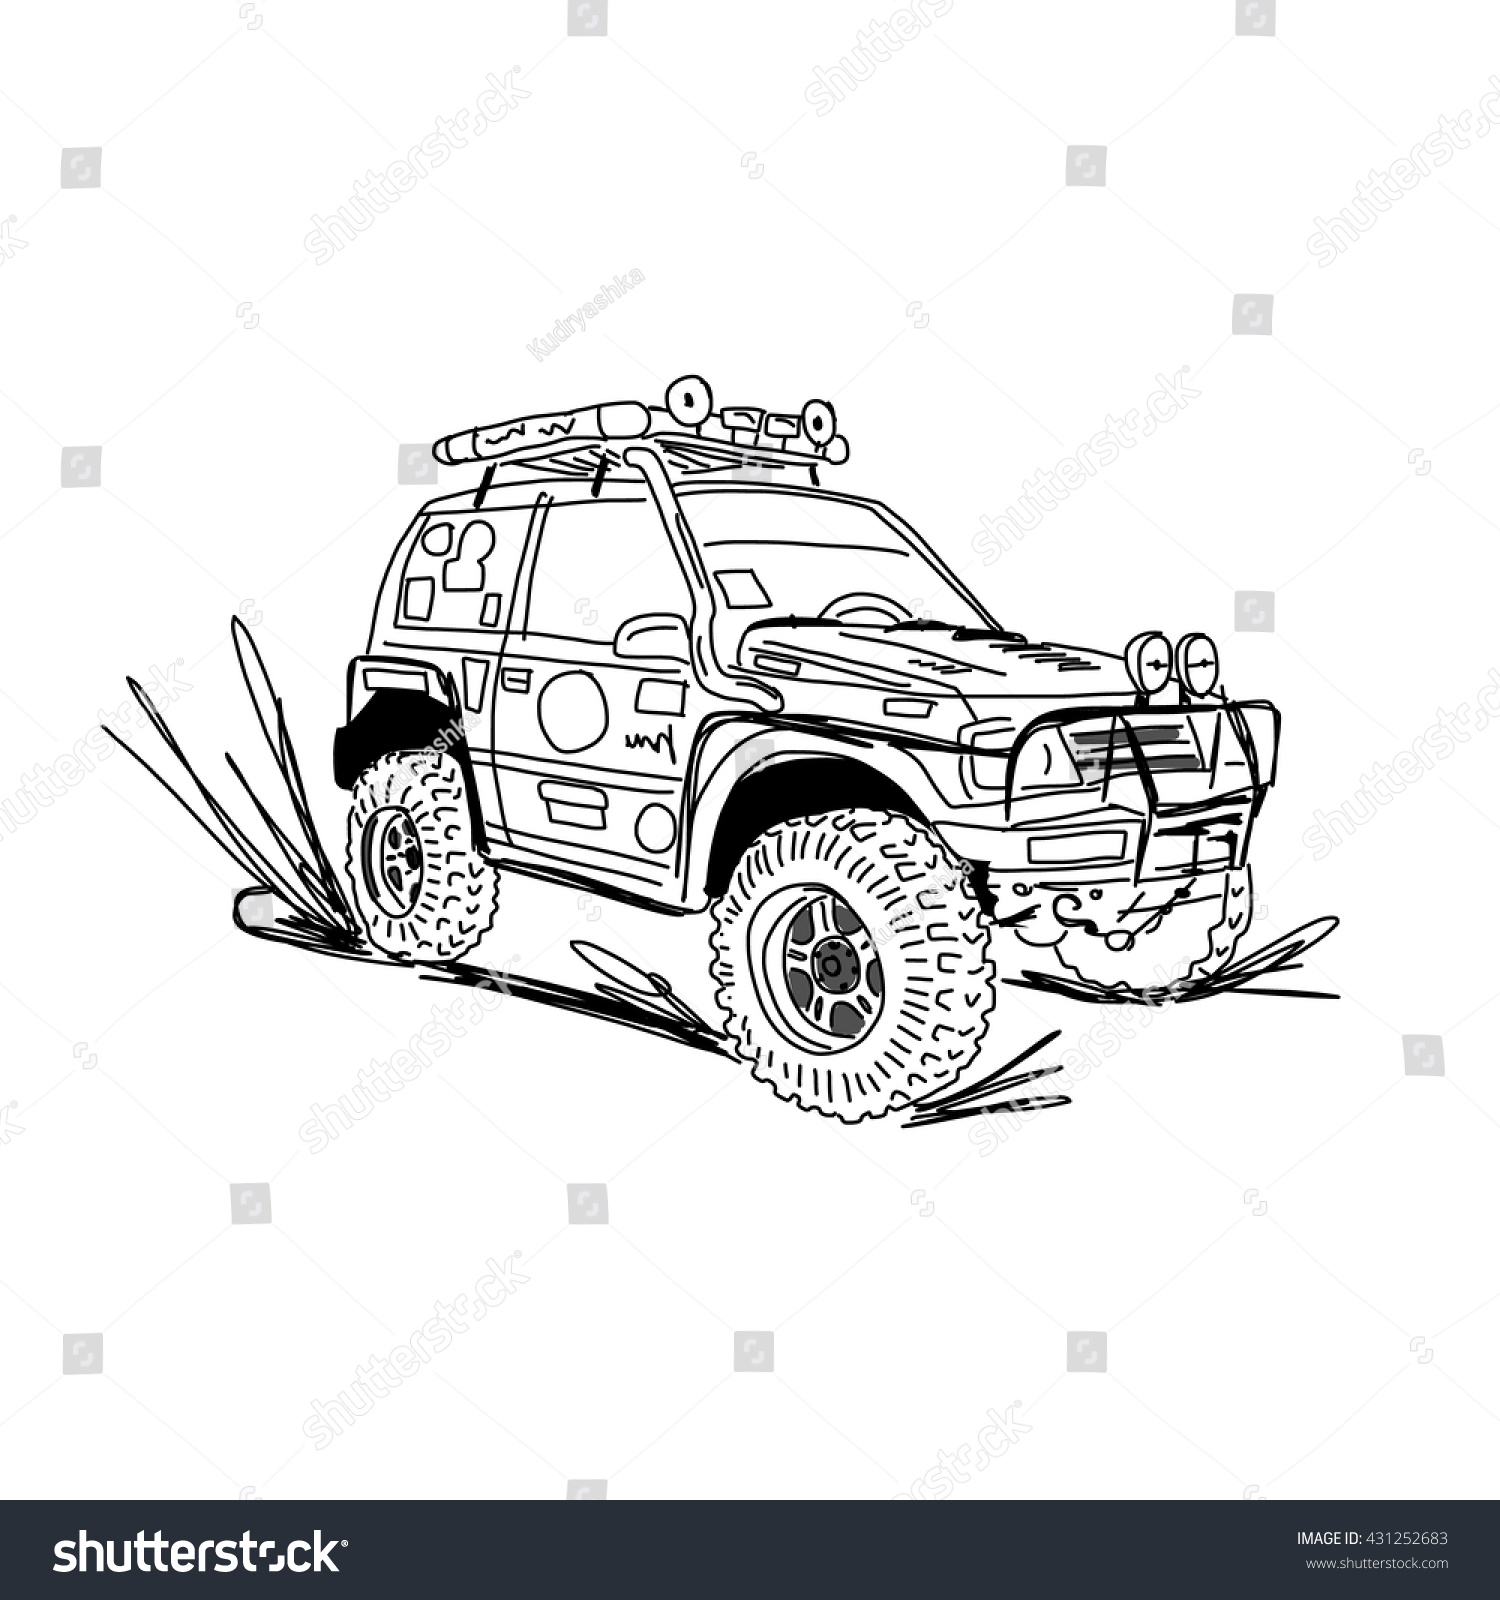 Tuned Suv Car Sketch Your Design Stock Vector Shutterstock